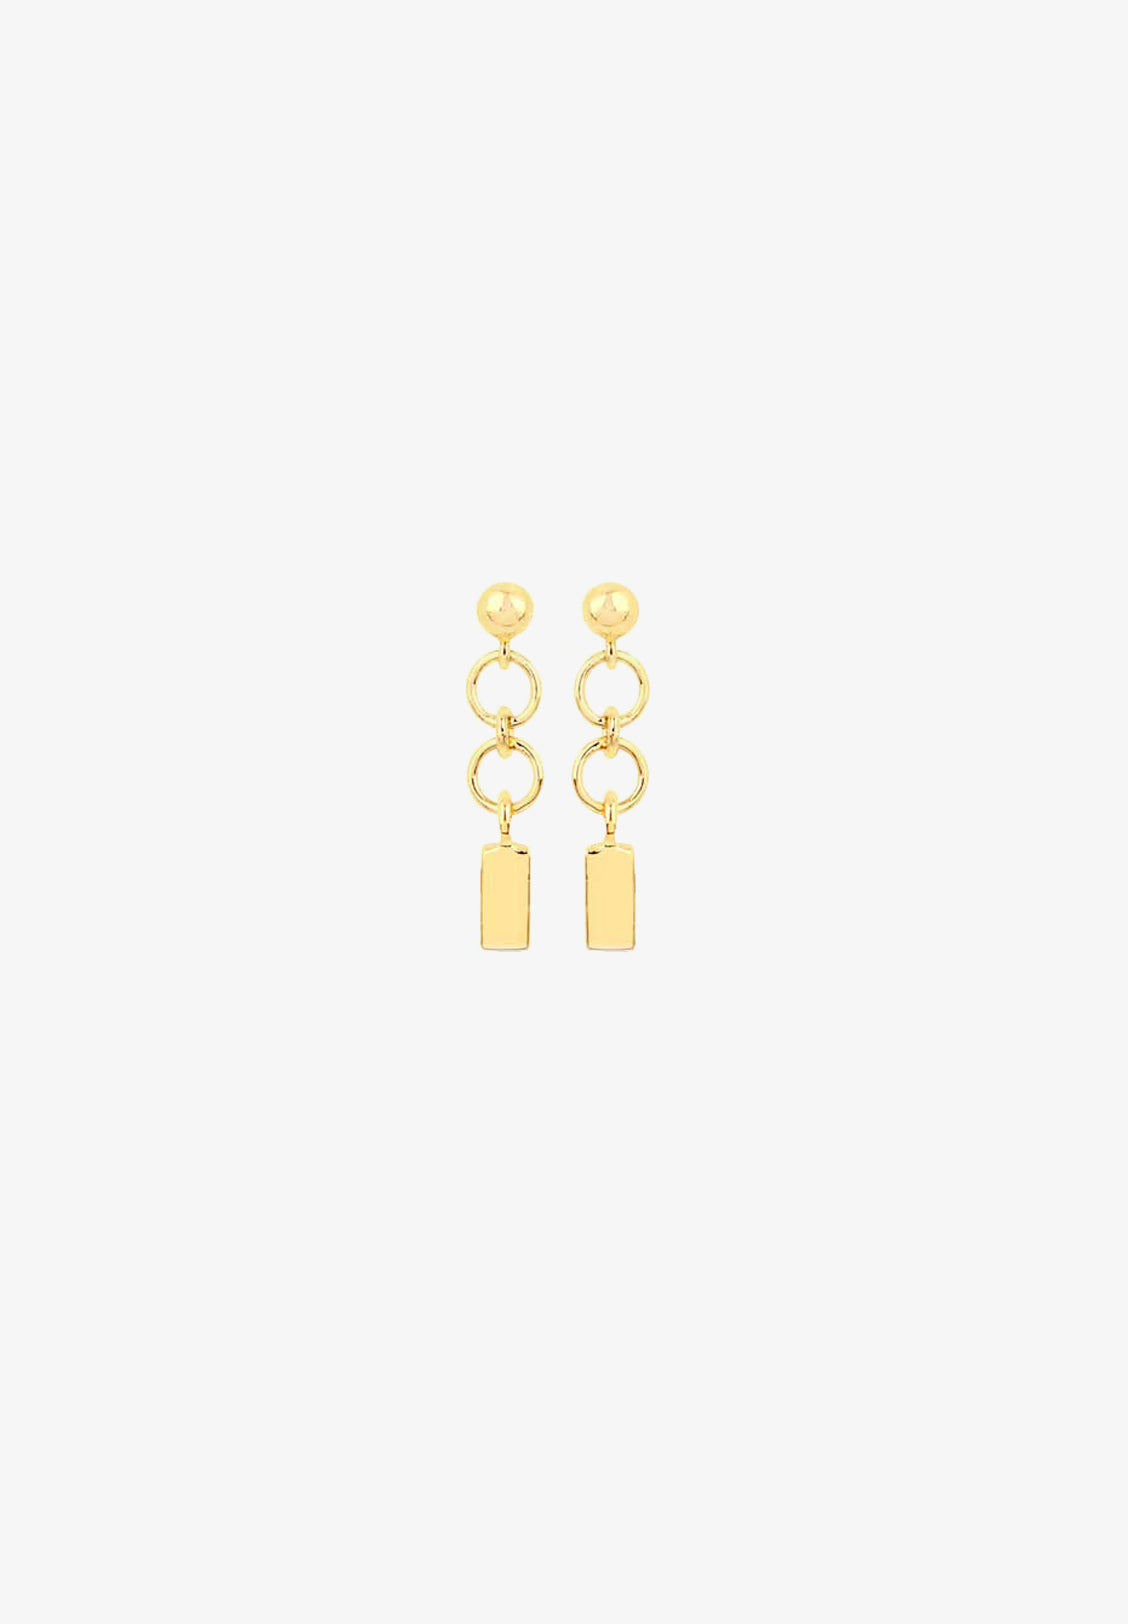 FLASH - INGOT STUDS, 14K GOLD VERMEIL